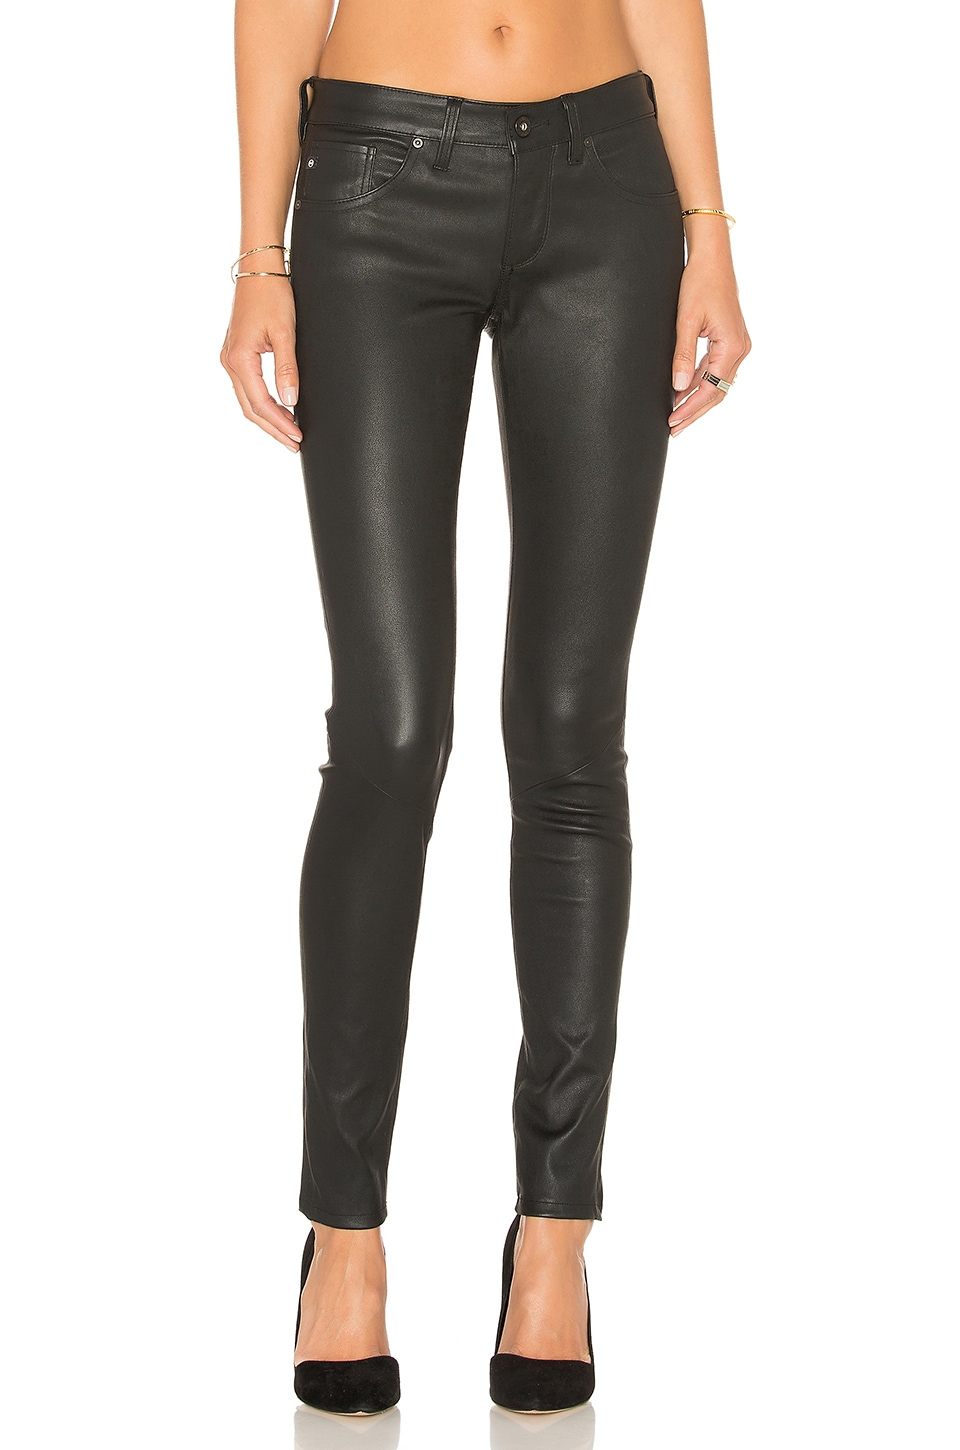 The Leather Legging by AG Adriano Goldschmied